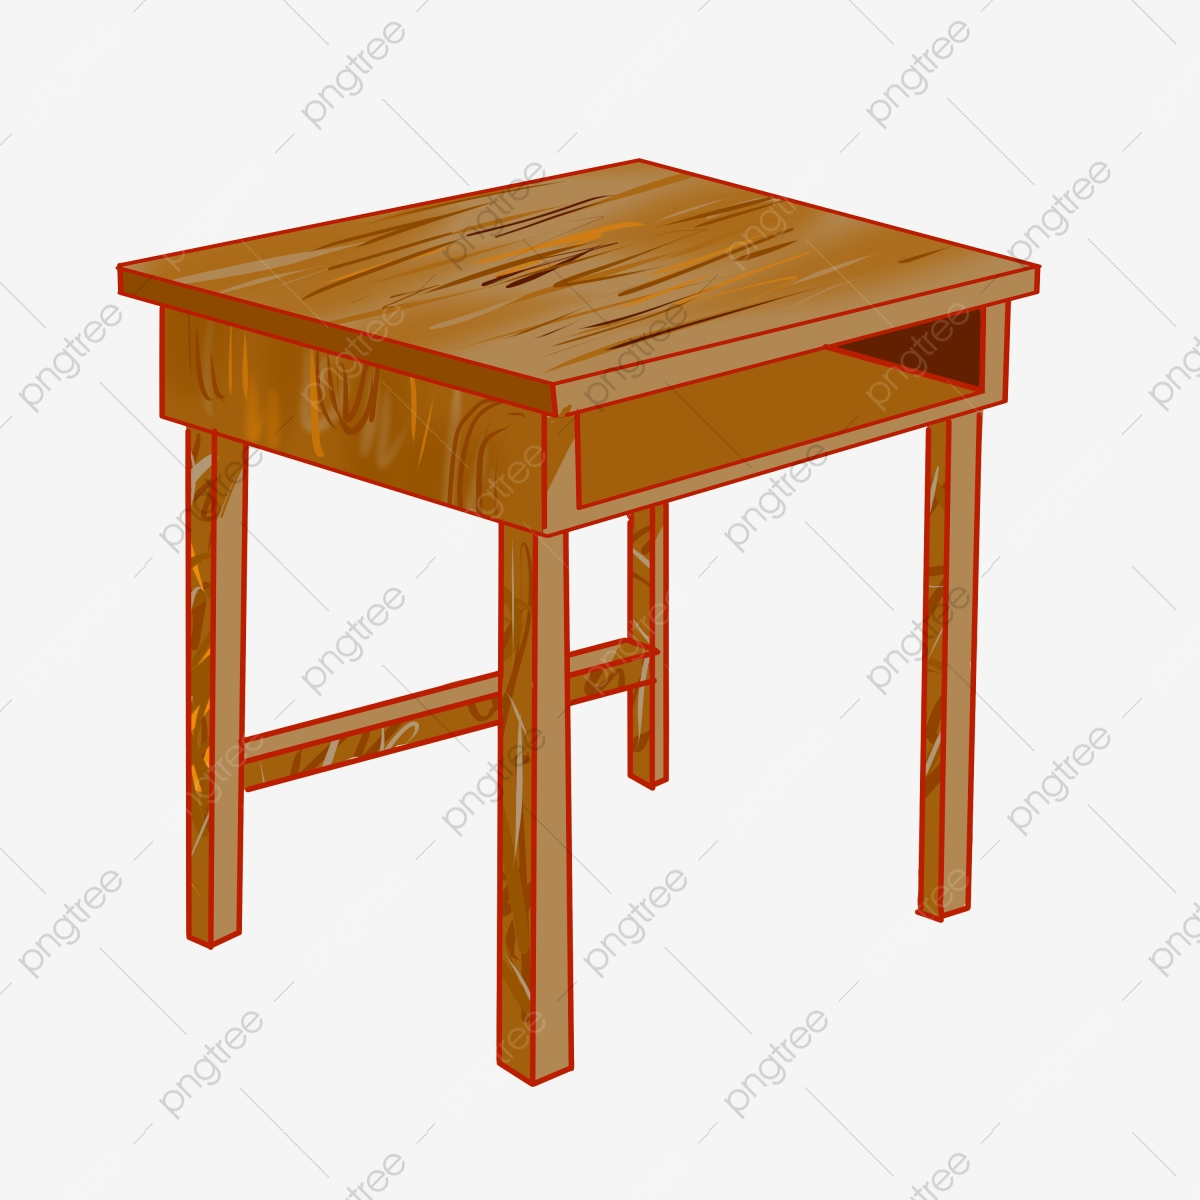 https pngtree com freepng wooden small table cartoon illustration 4572692 html